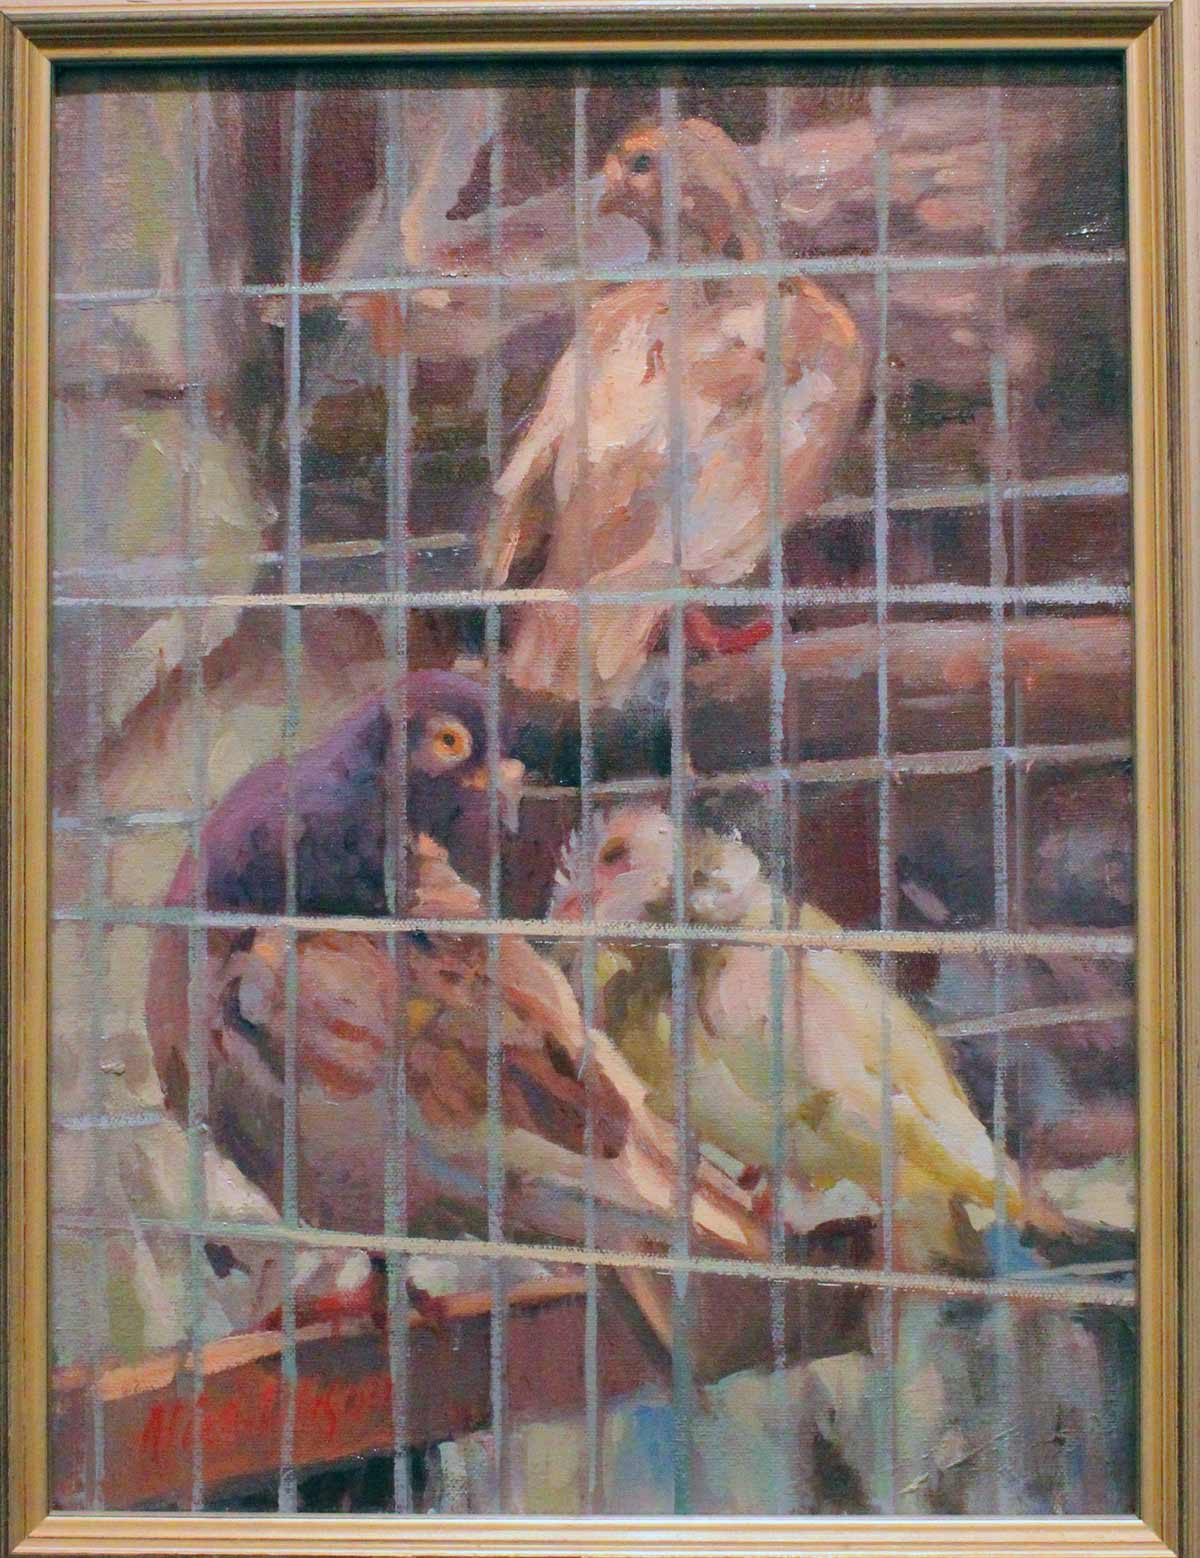 Allison-Pigeon-Series-2-Private-Collection